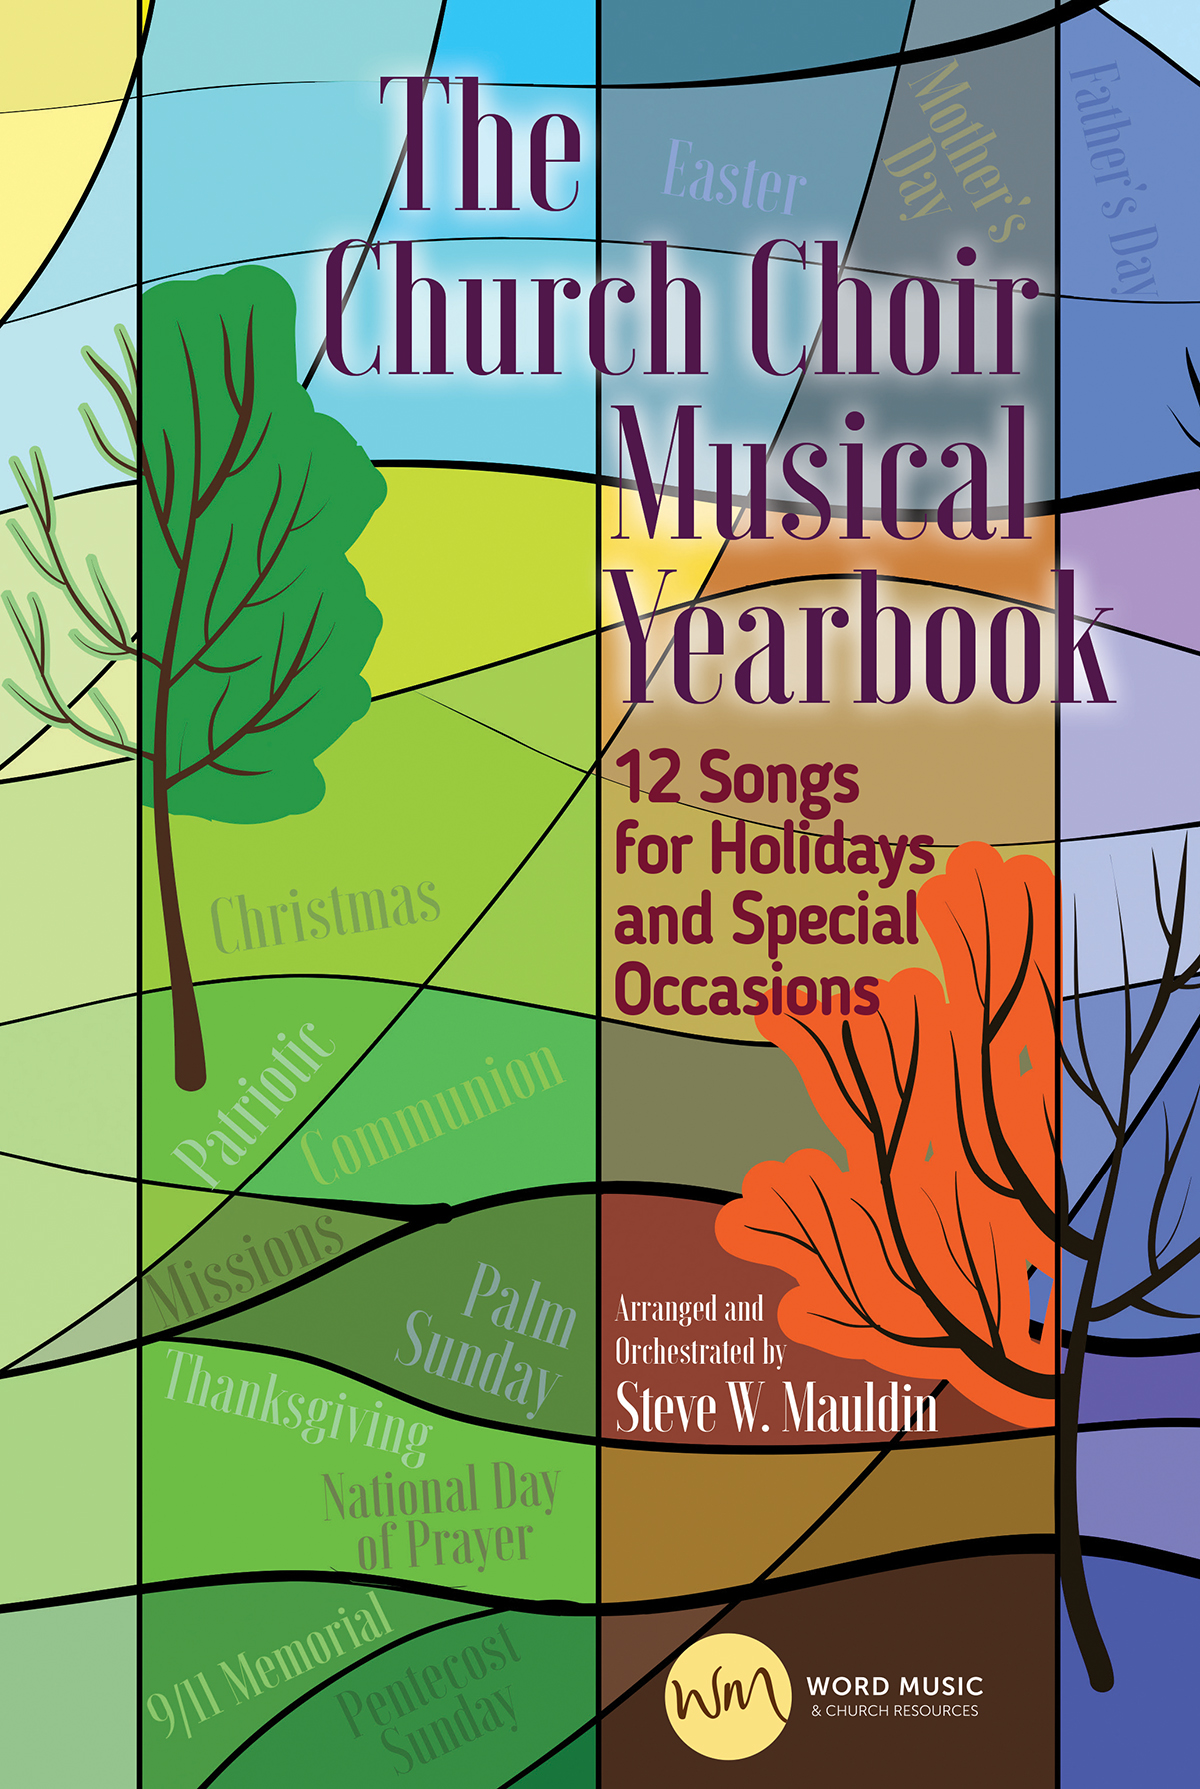 The Church Choir Musical Yearbook